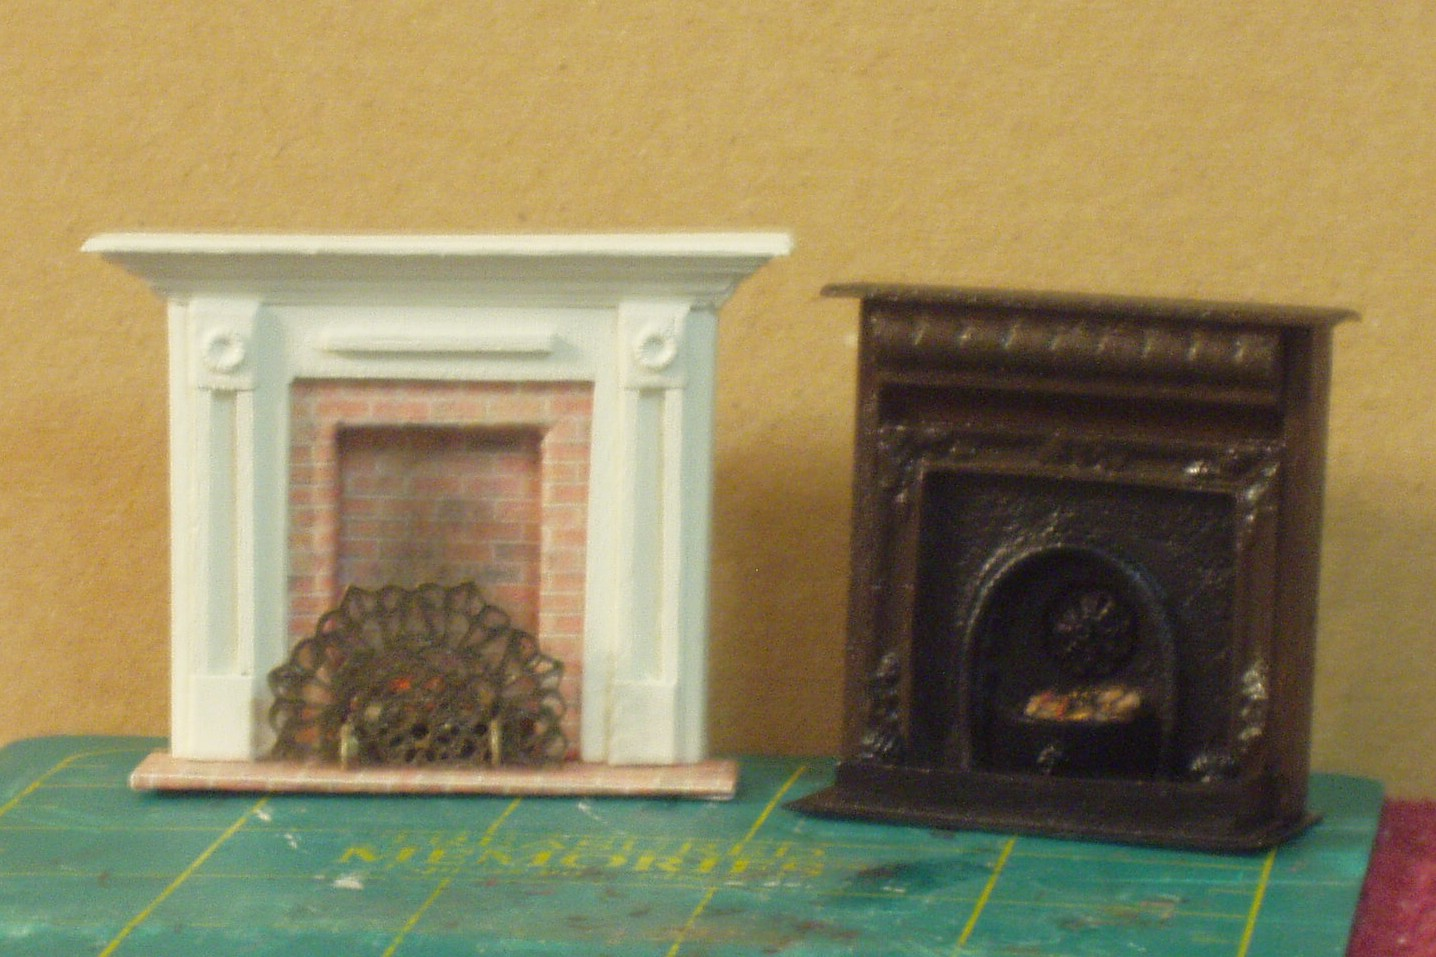 BUILDING HALF SCALE FIREPLACES The Greenleaf Miniature